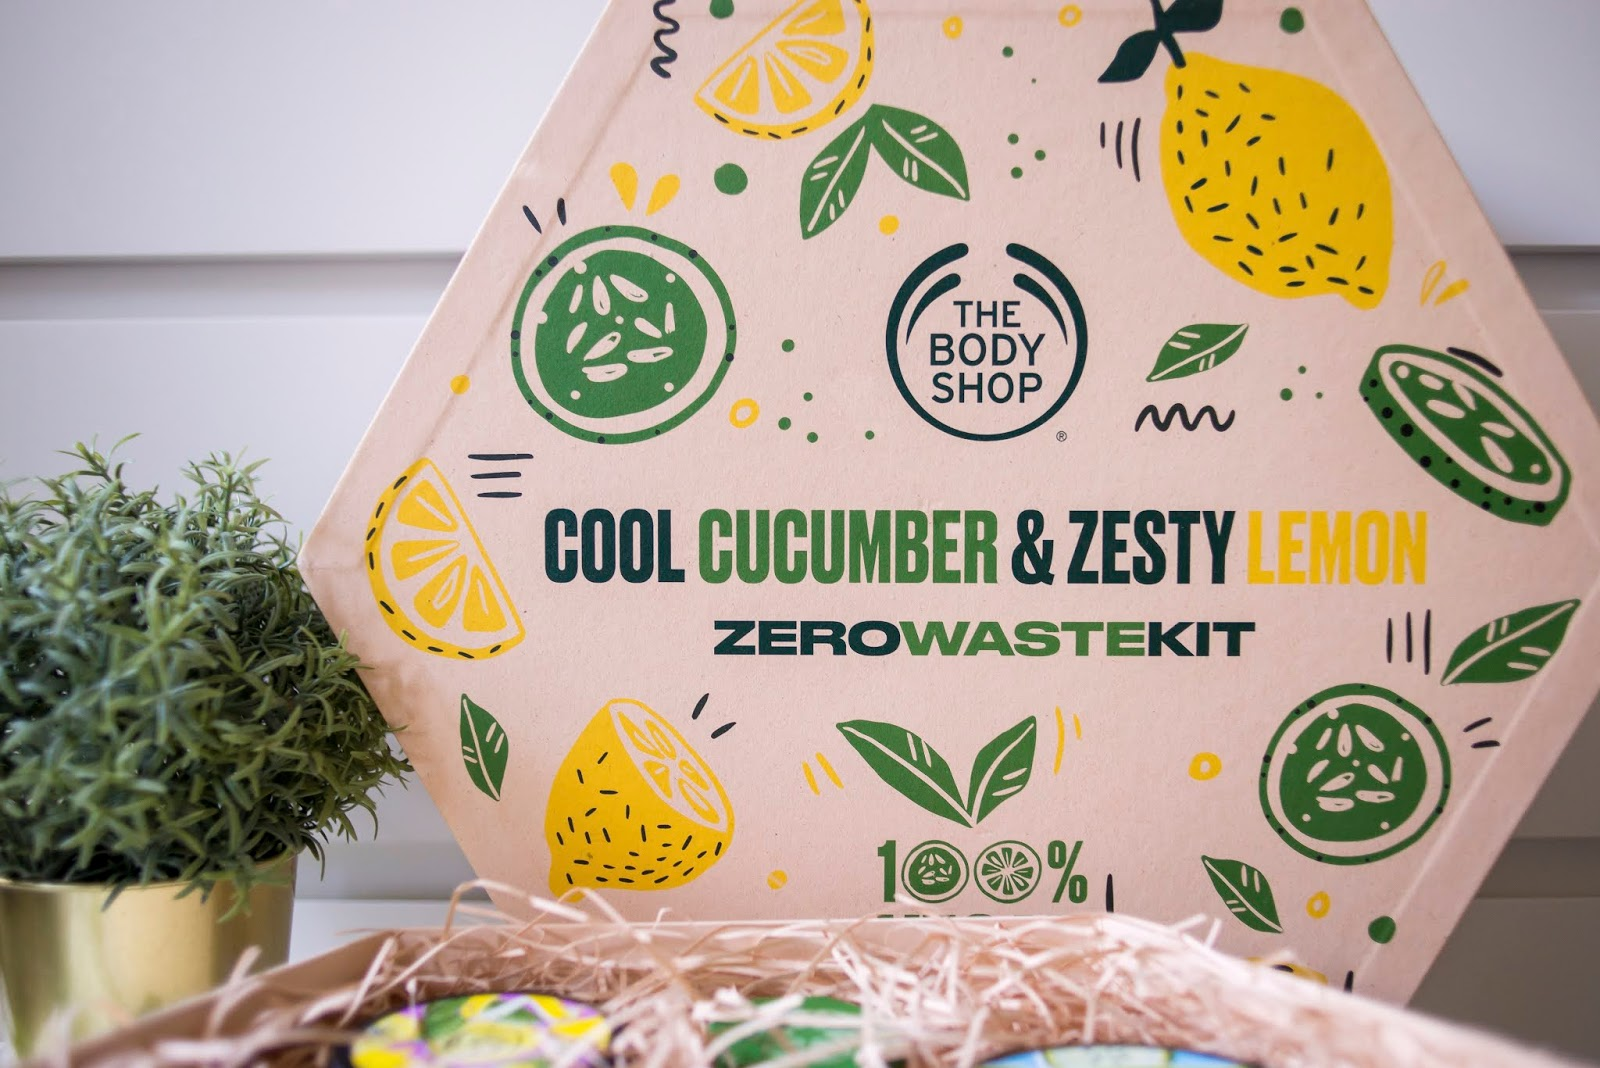 http://www.recklessdiary.ru/2020/07/The-body-shop-derzij-limon-krutoj-ogurec-Sool-Sucumber-Zesty-Lemon-novinki-otzyvy.html